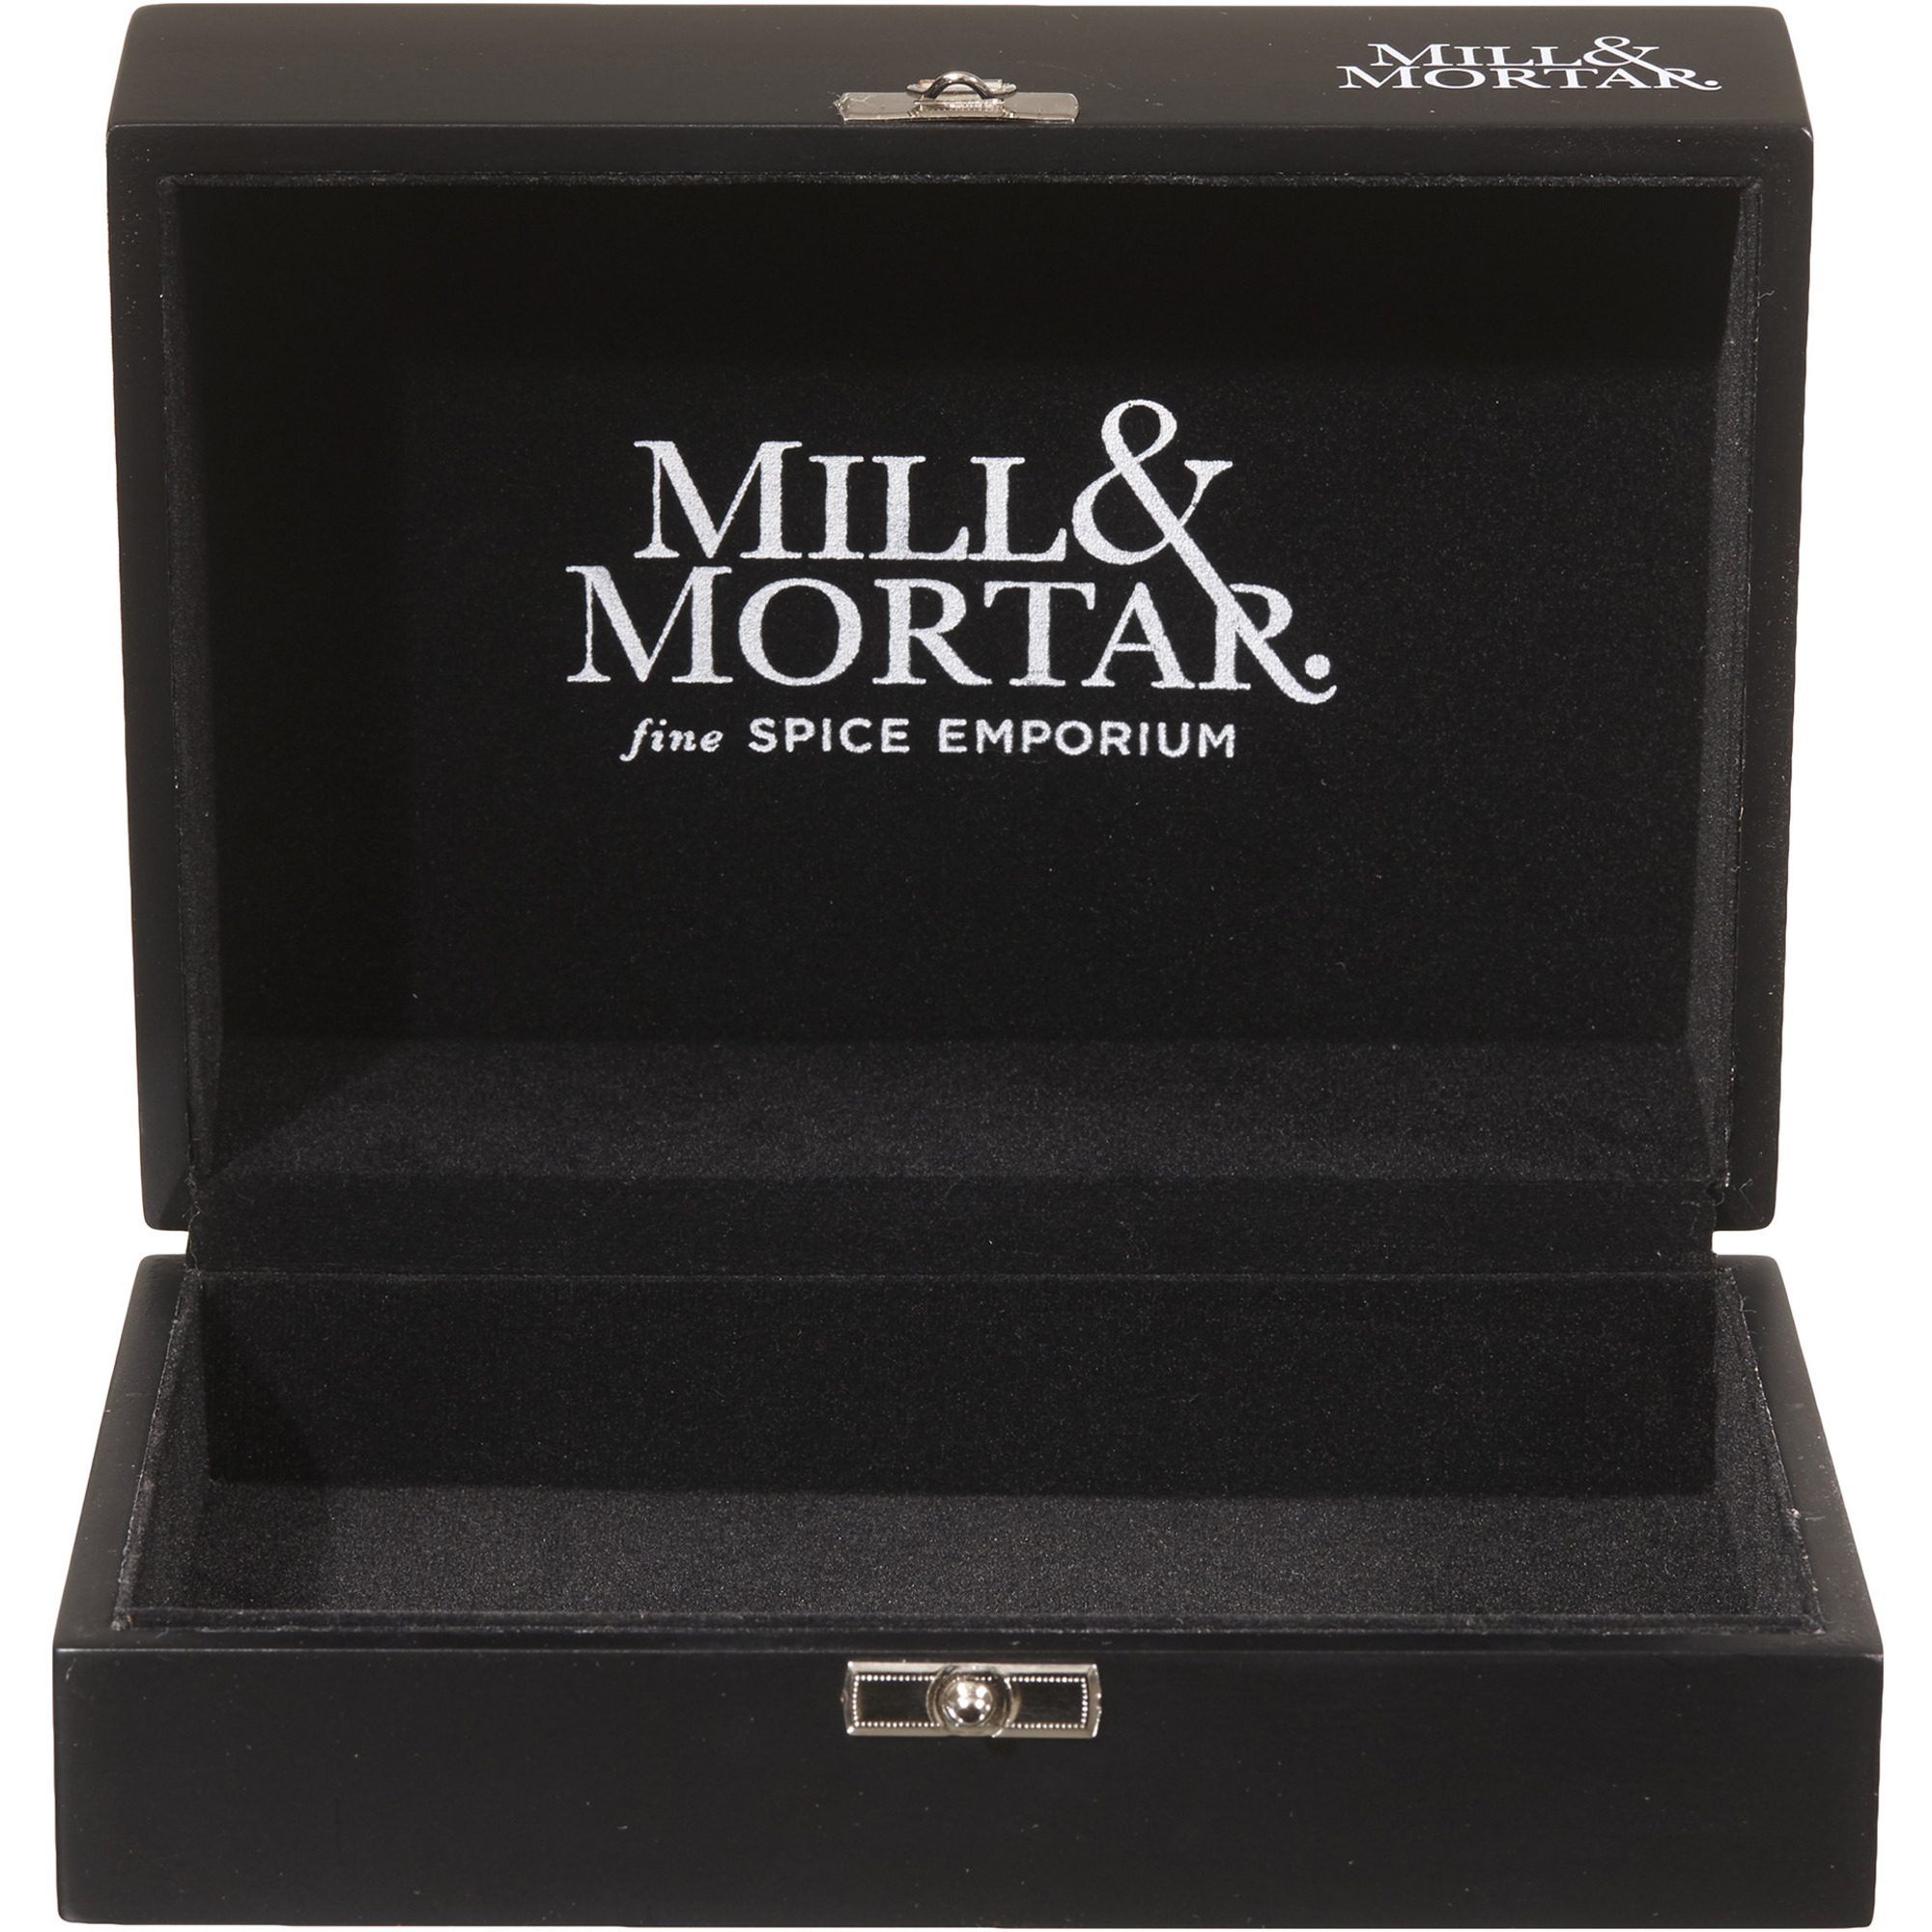 Mill & Mortar Spice Chest 6 st.